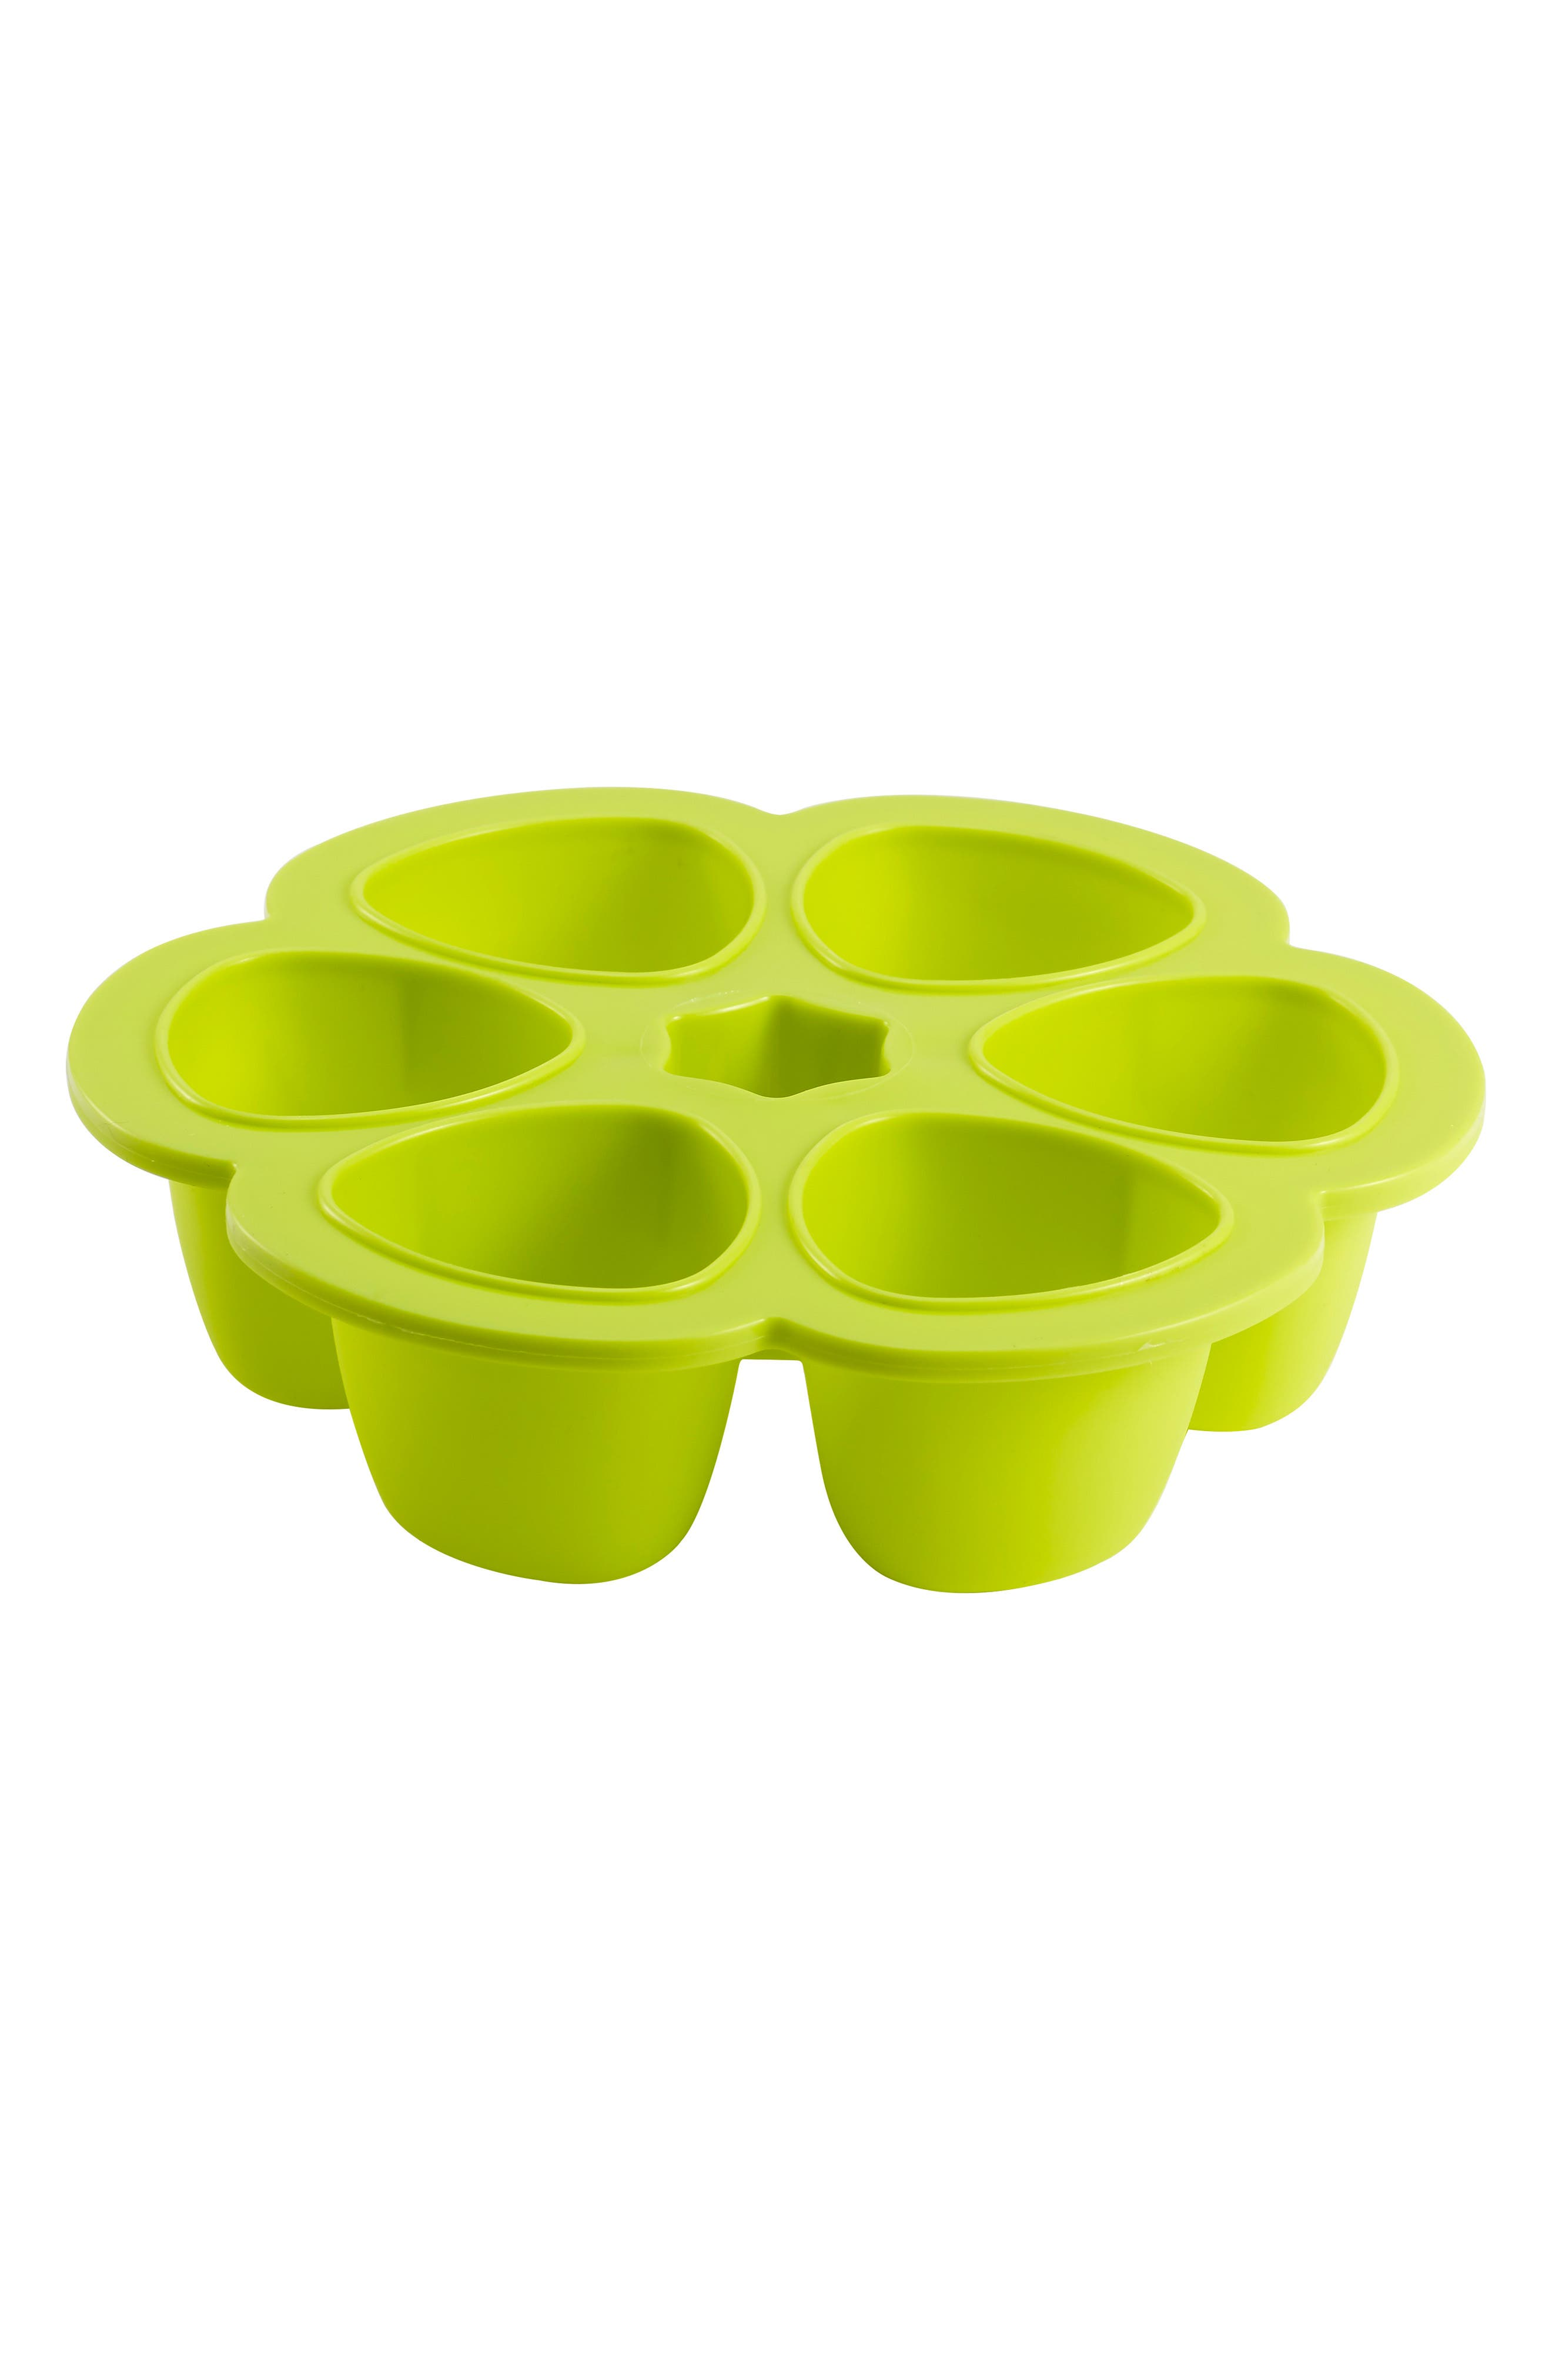 'Multiportions<sup>™</sup>' Silicone 5 oz. Food Cup Tray,                             Alternate thumbnail 3, color,                             Neon